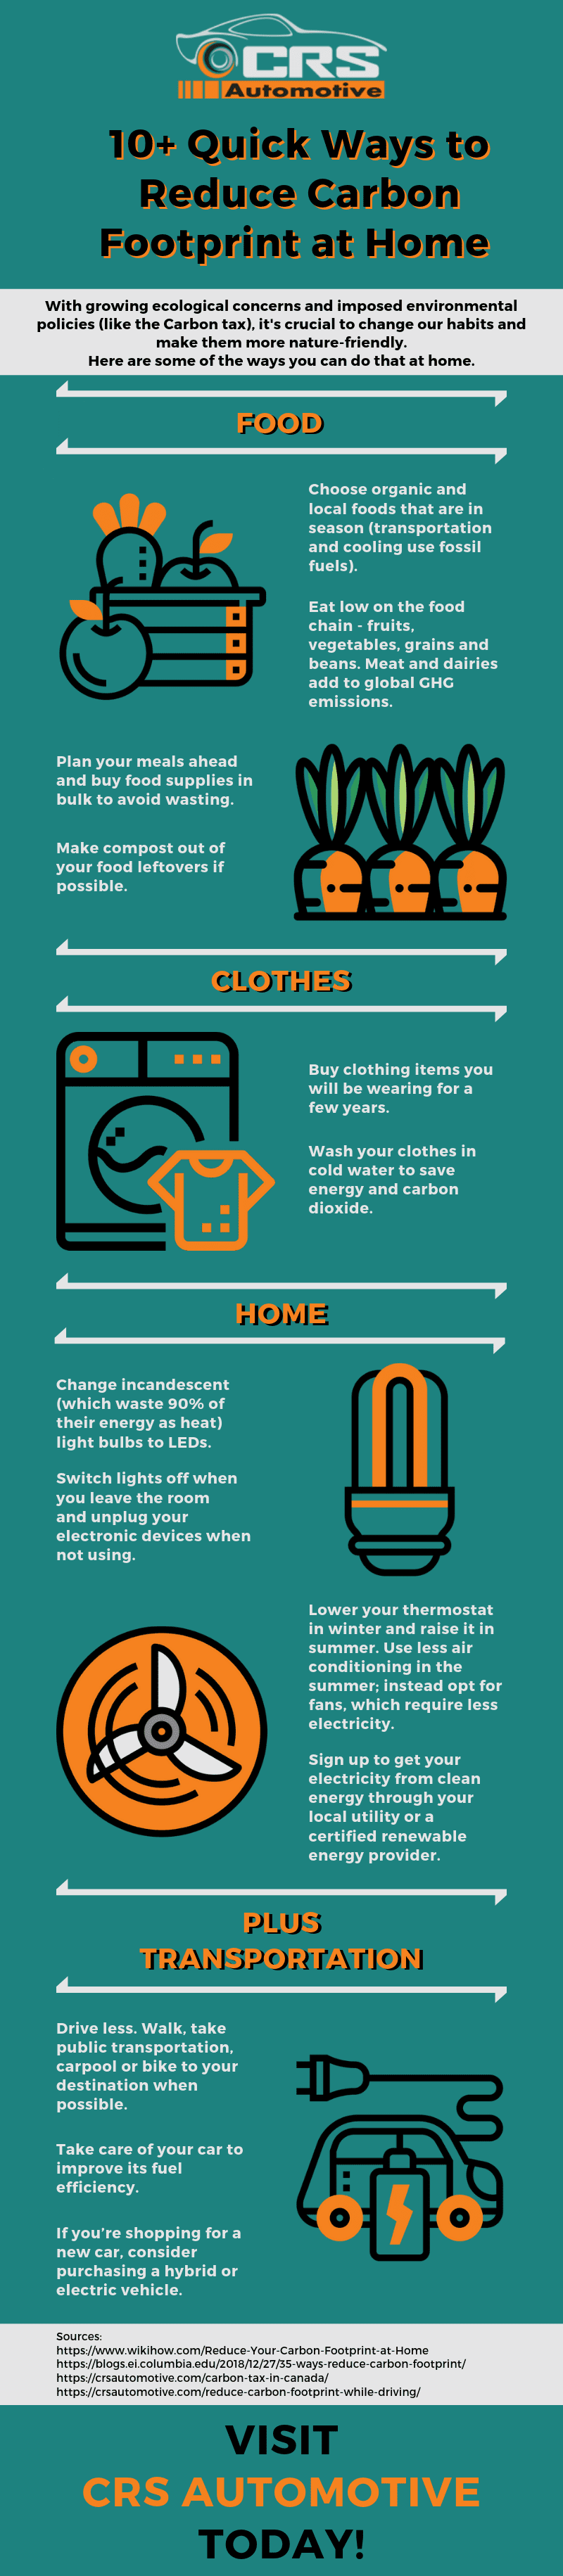 10 Quick Ways to Reduce Carbon Footprint at Home Infographic